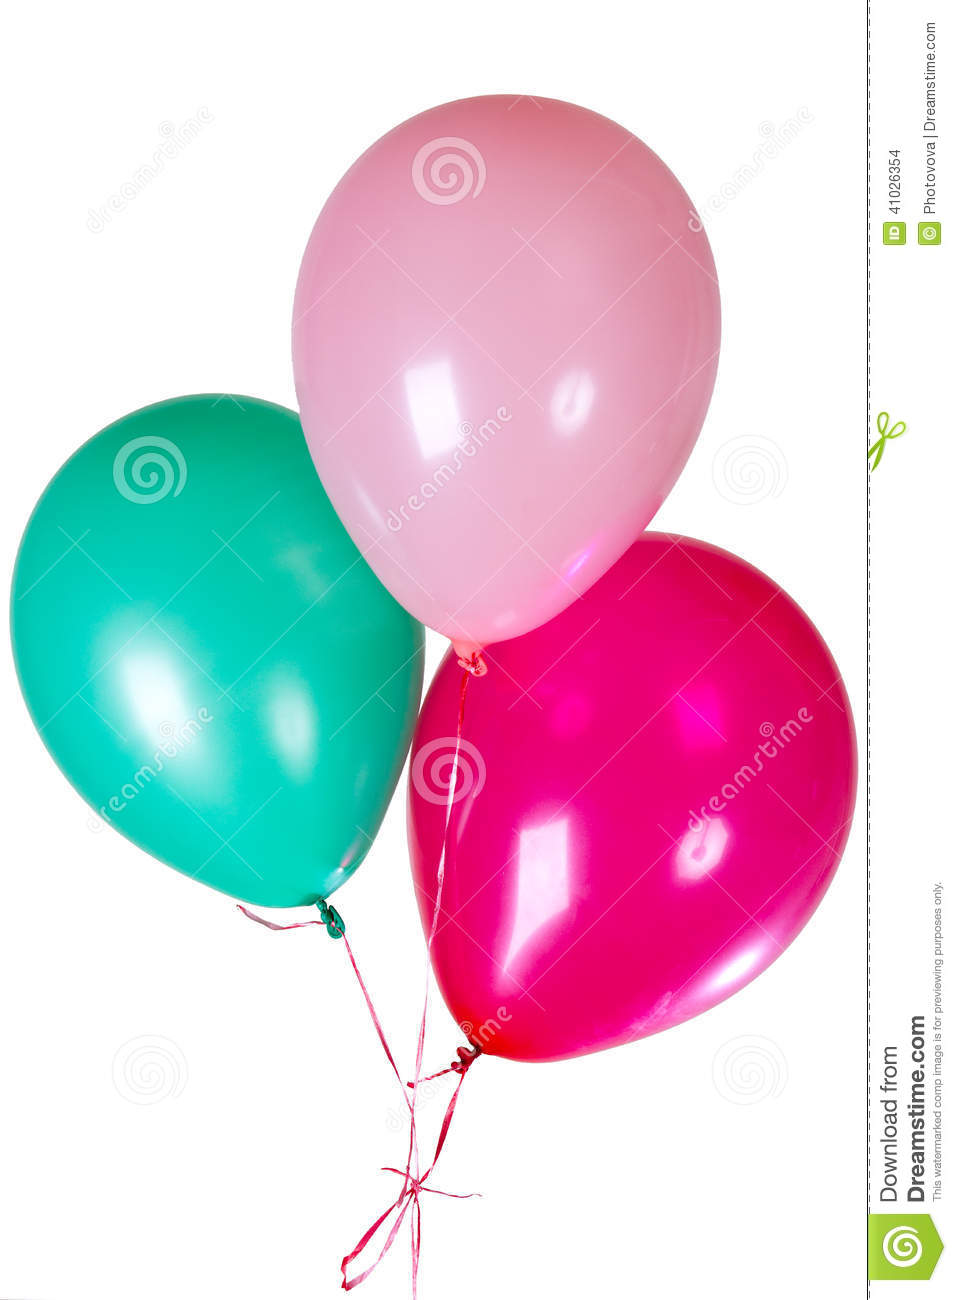 Happy birthday party balloon decoration stock photo for Balloon decoration business